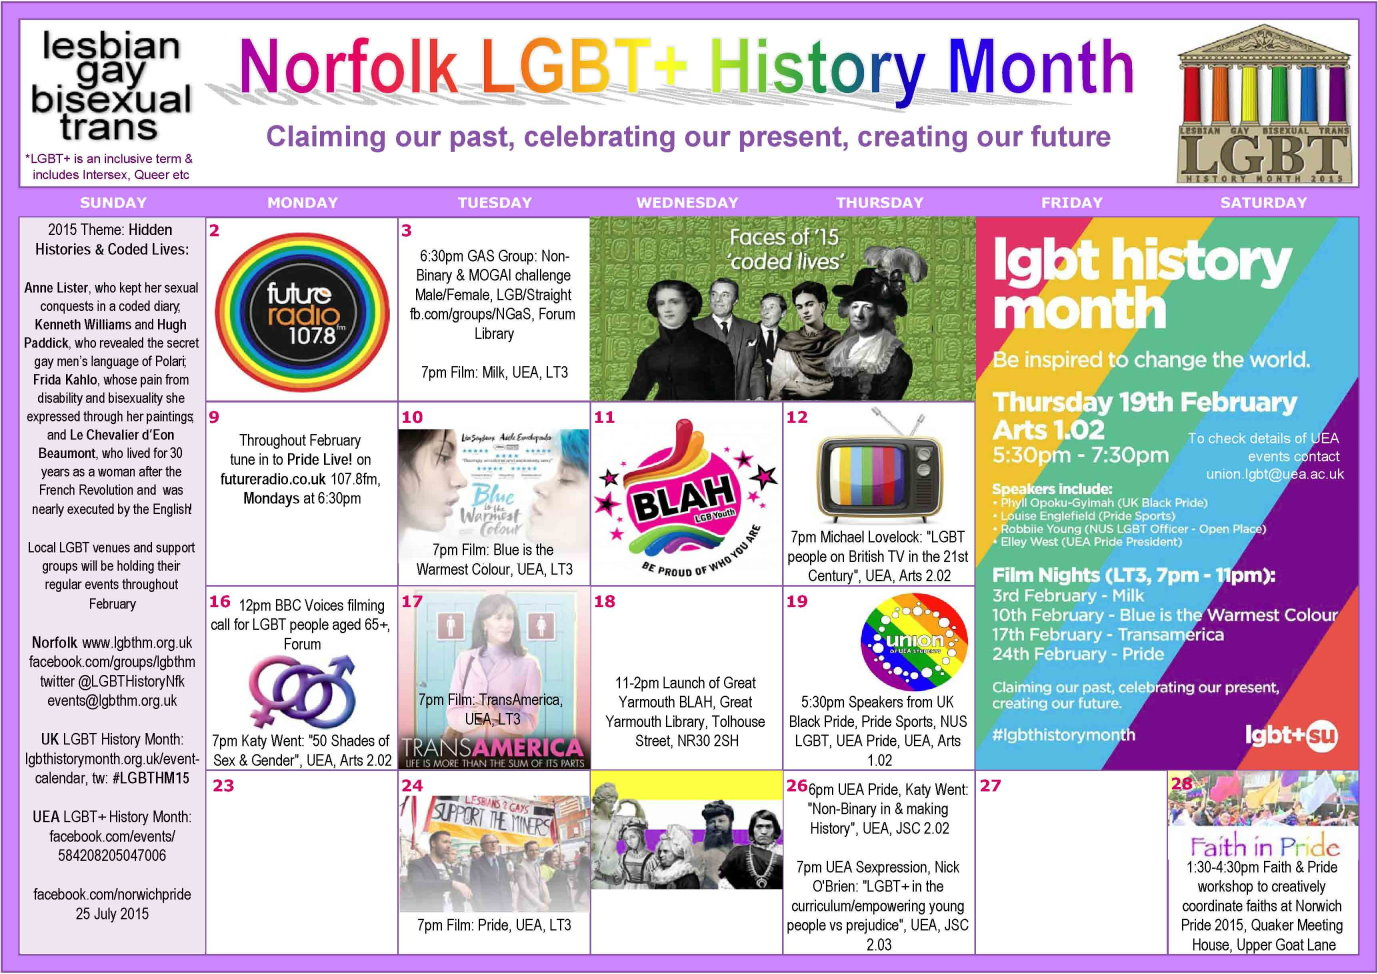 Click to view or download full A4 LGBT History Month Norfolk pdf calendar